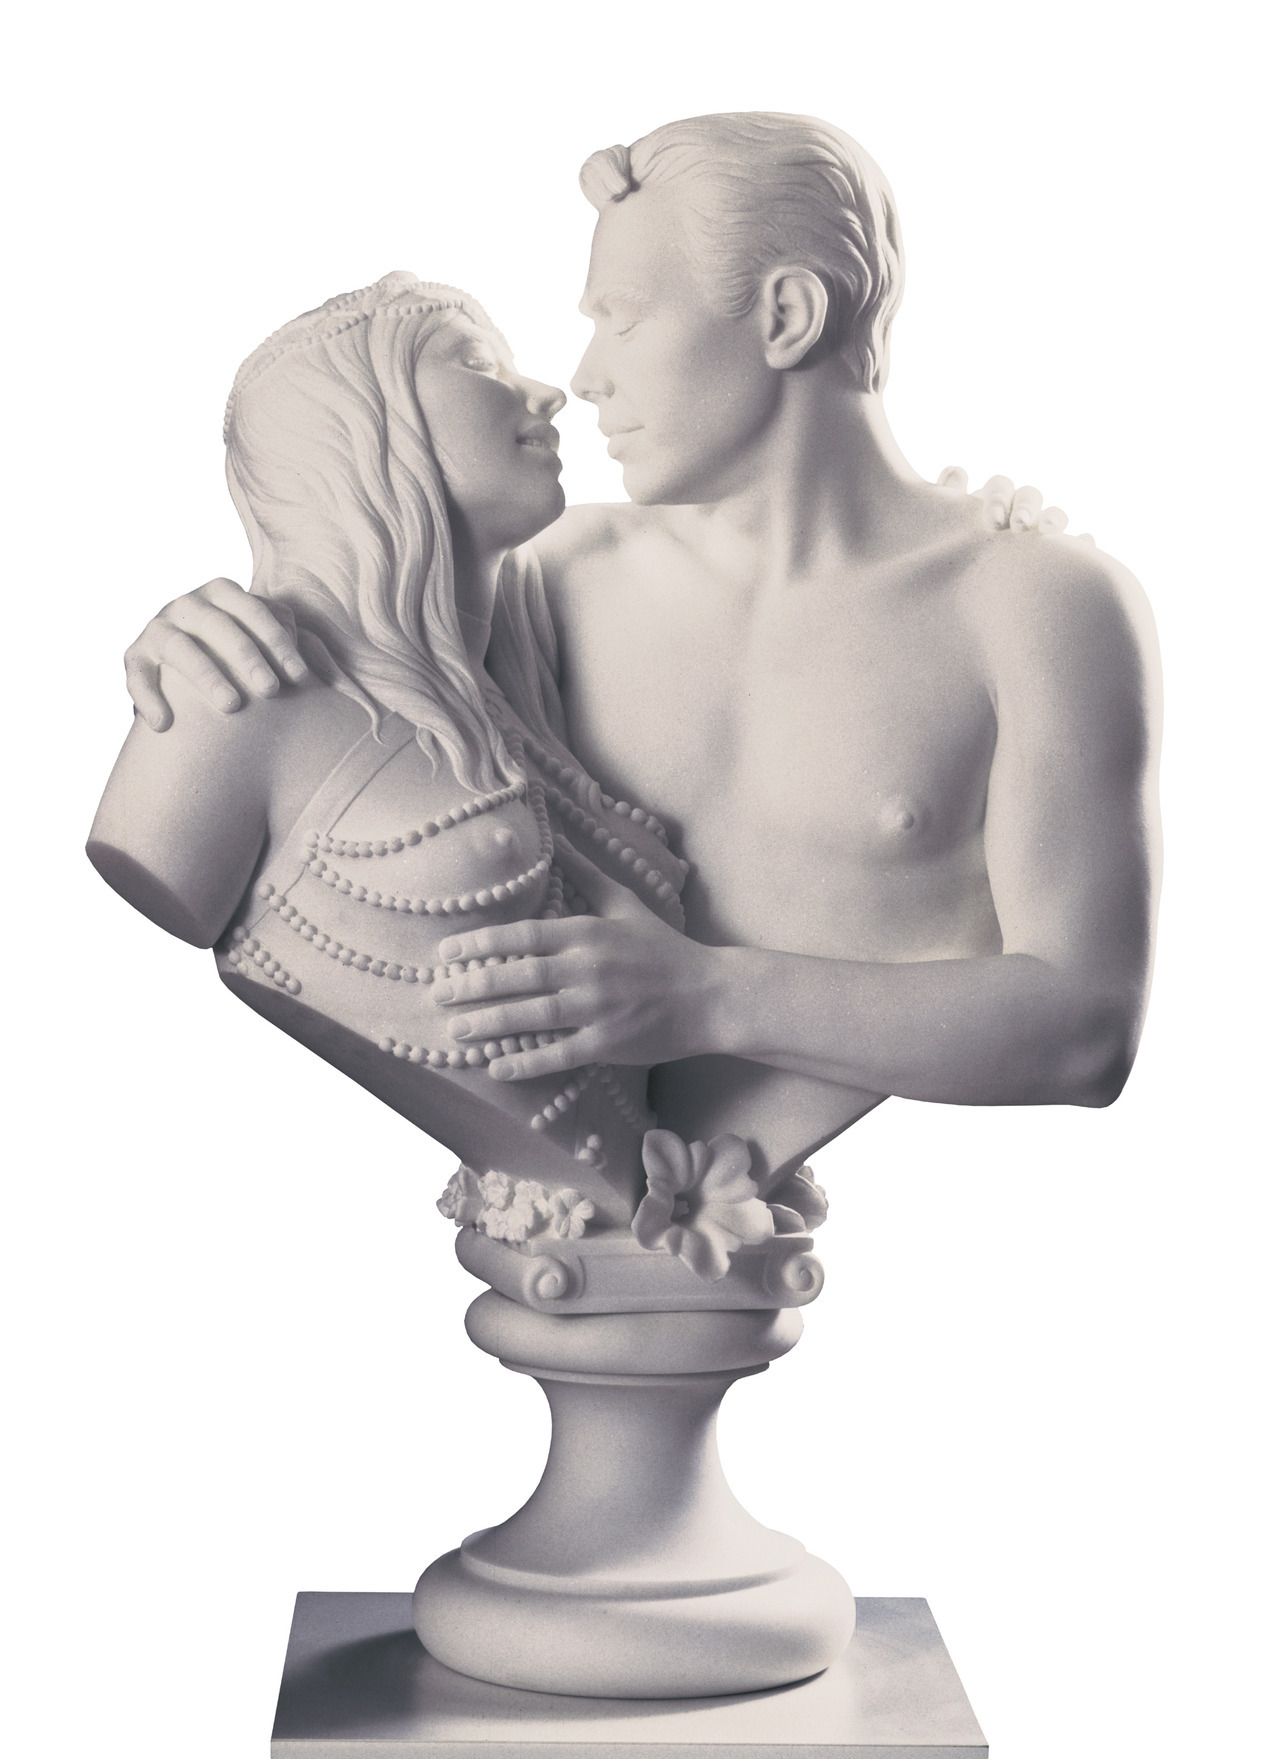 Jeff Koons (b. 1955), Bourgeois Bust – Jeff and Ilona, 1991